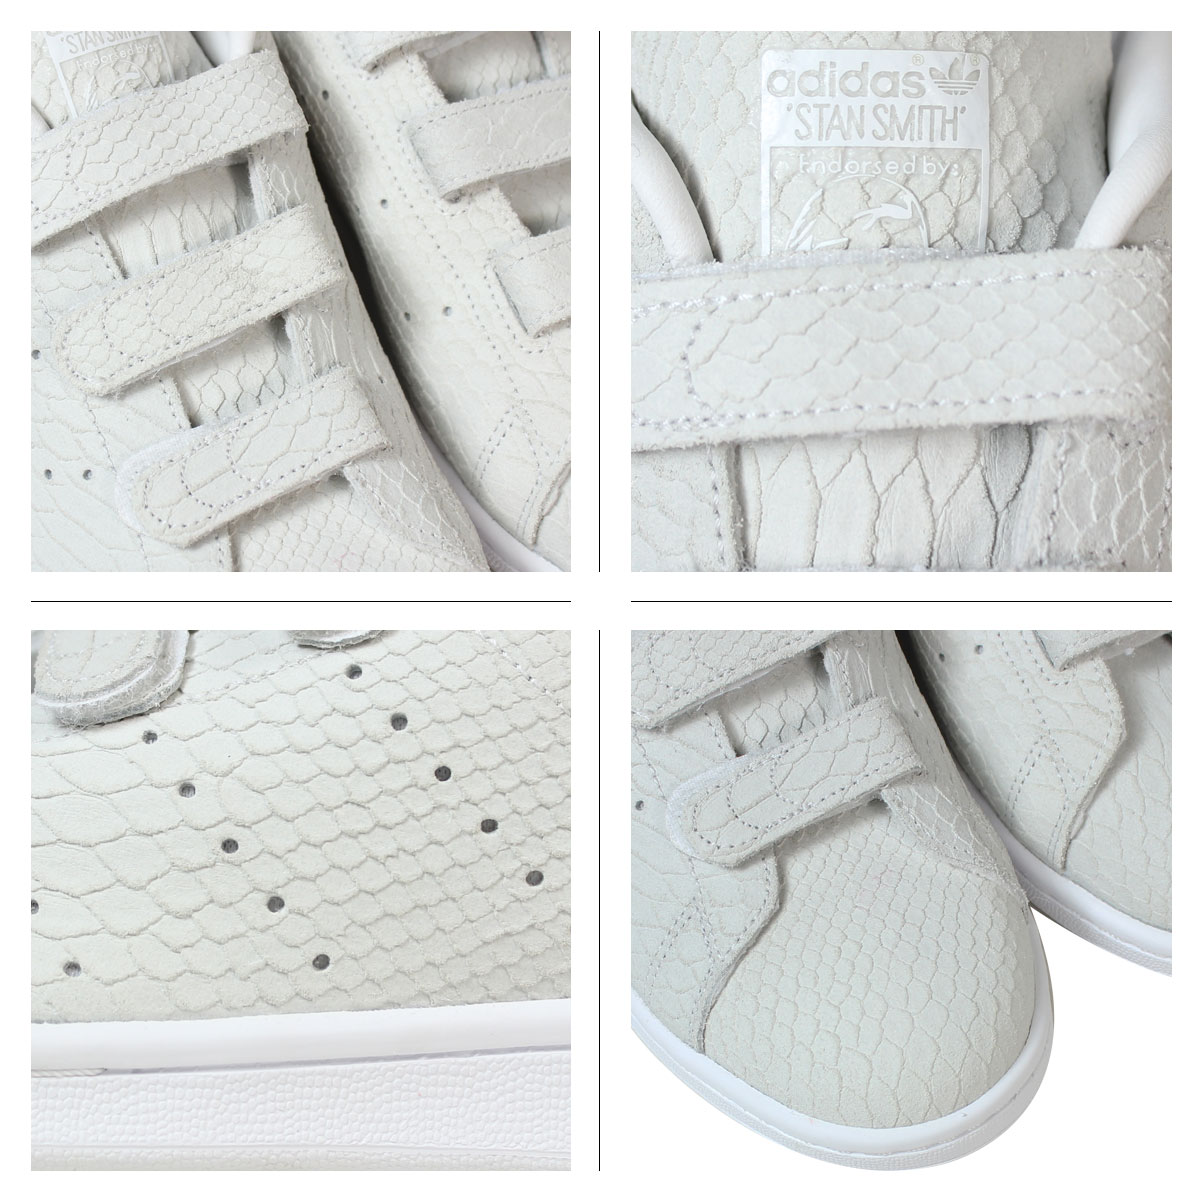 [SOLD OUT]阿迪达斯原始物adidas Originals Stan Smith铃黑运动鞋女士STAN SMITH CF W S32010鞋白